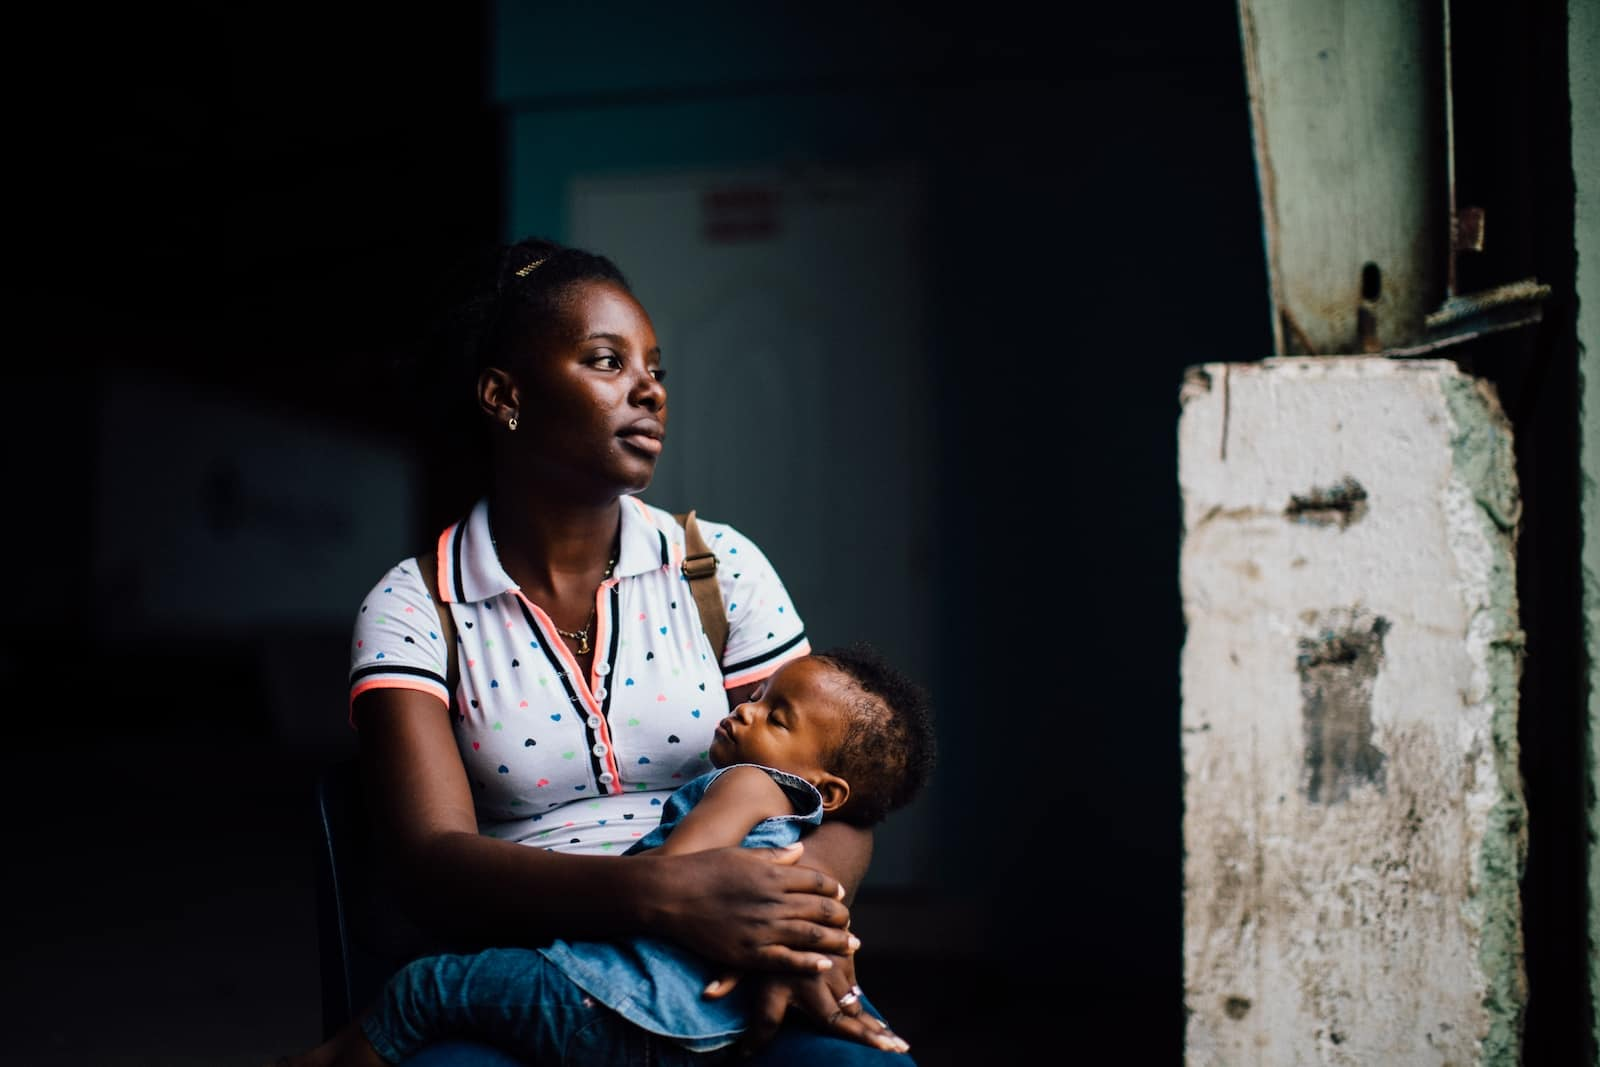 A woman in a white shirt sits in a dark room, looking out the window. She is holding a sleeping child in her lap.